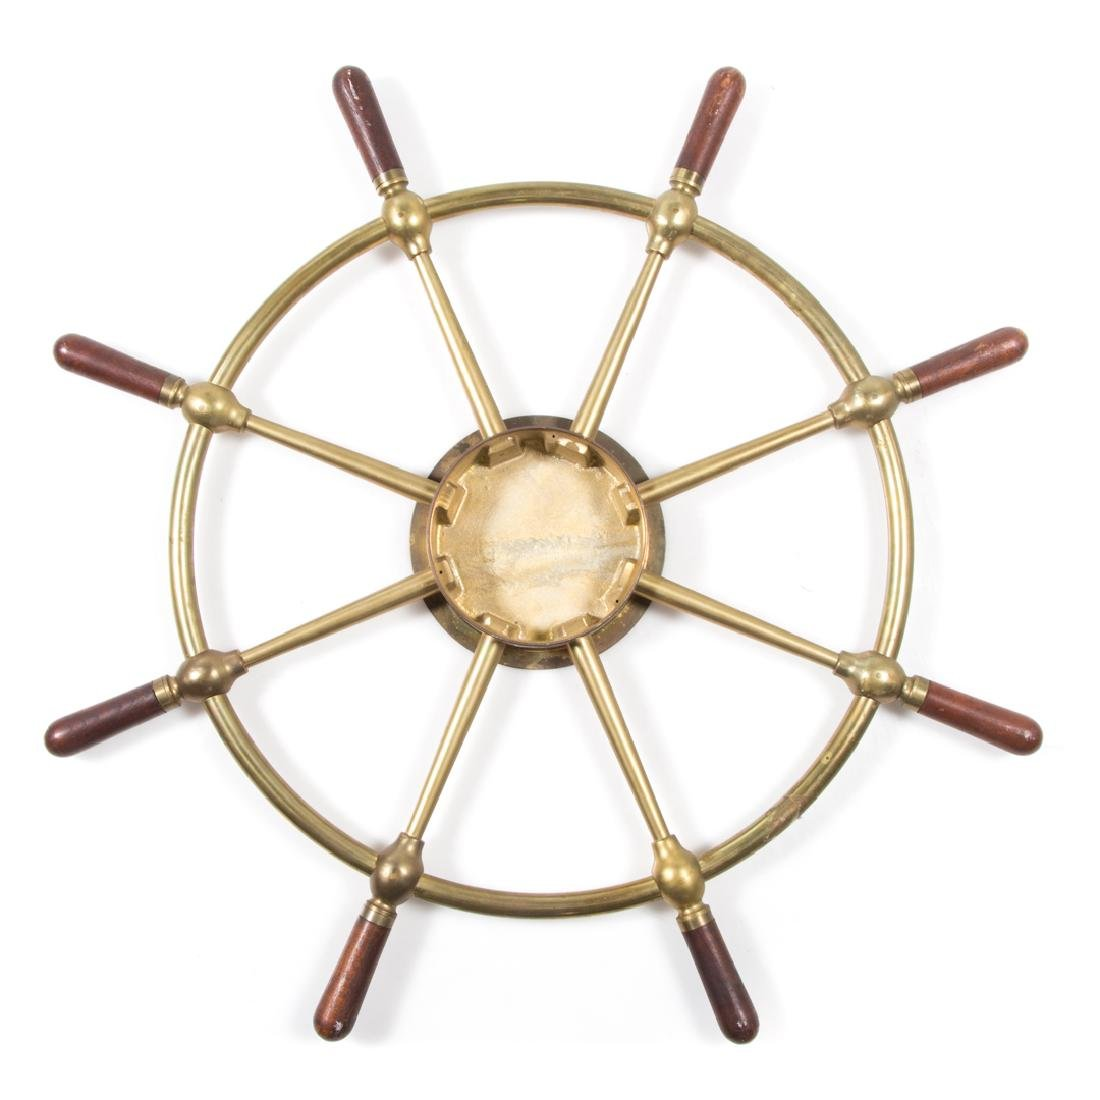 Brass and wood ships wheel clock case